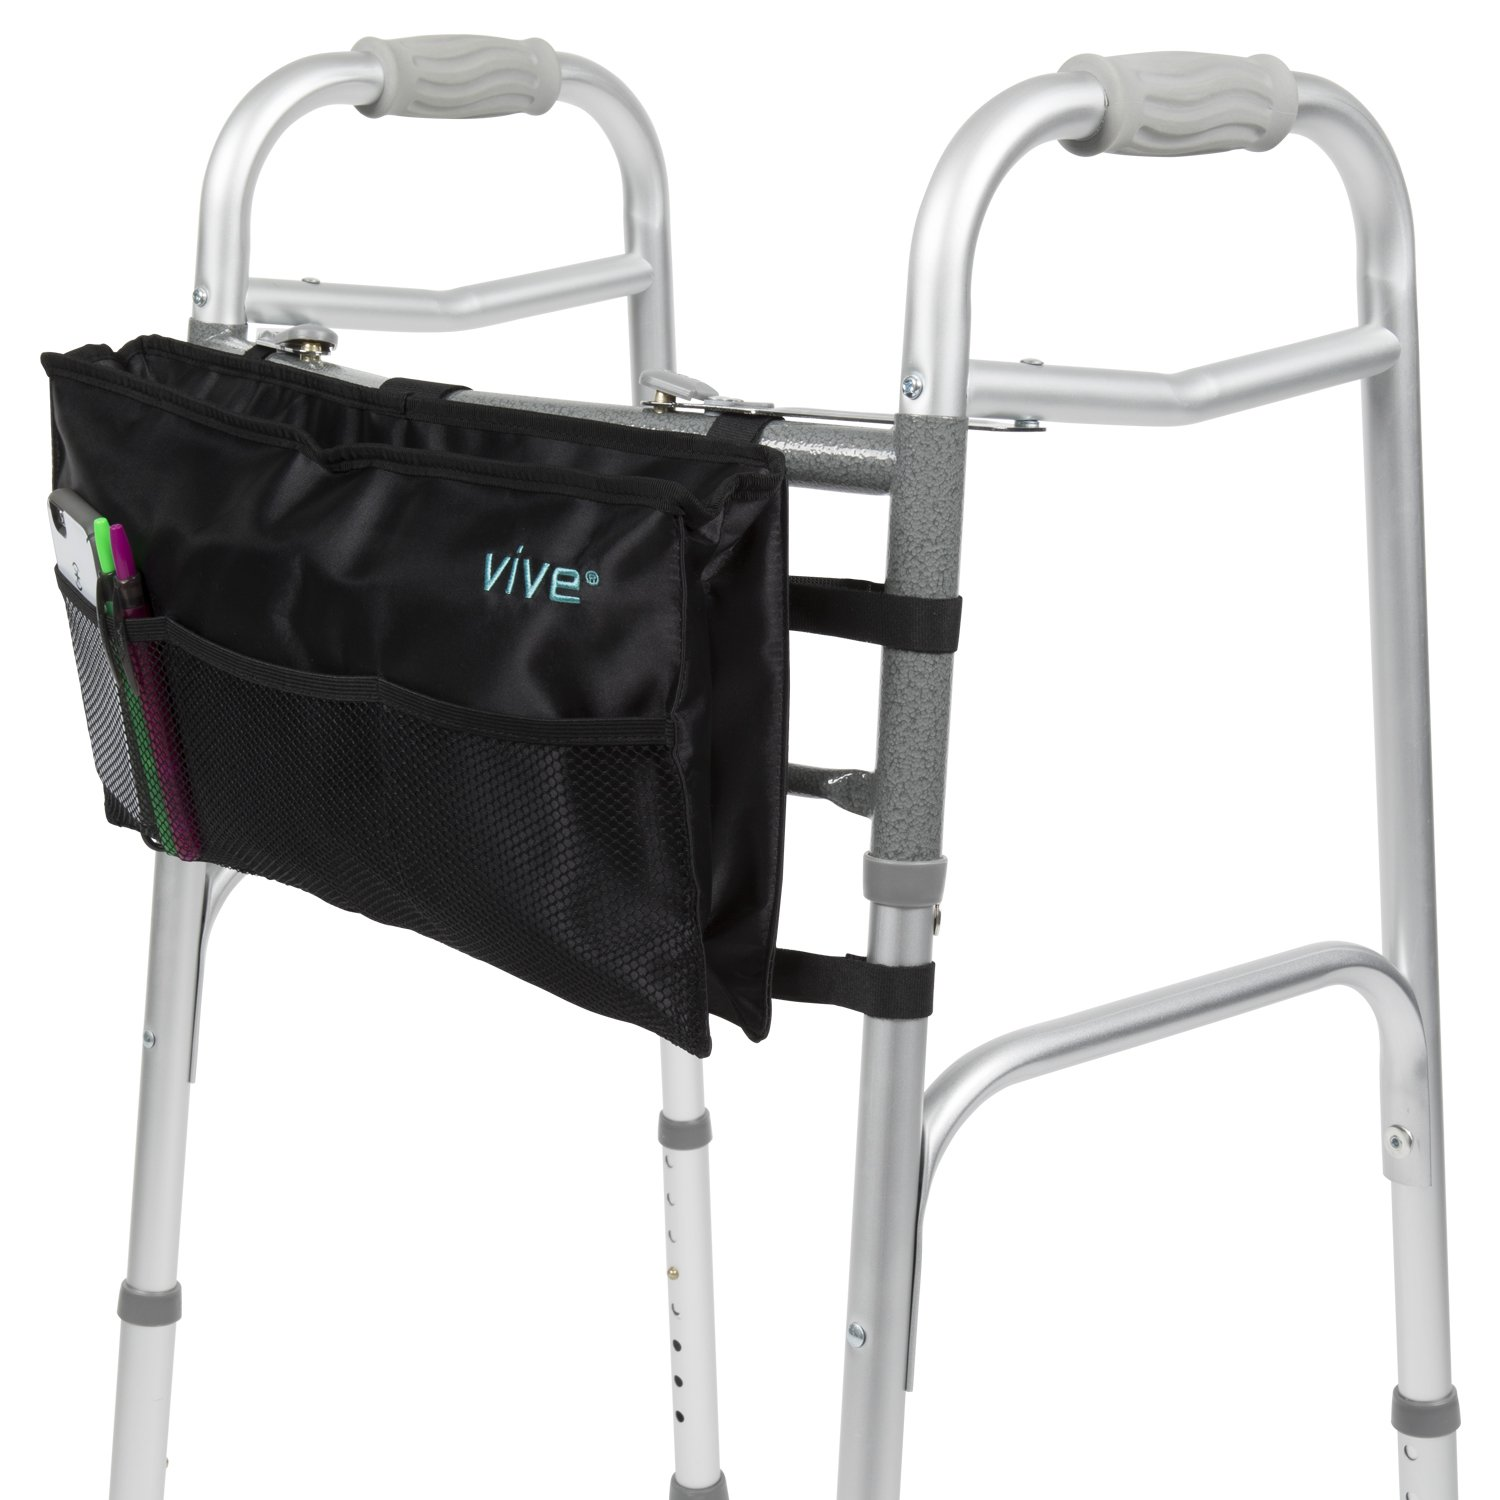 Walker Bag by Vive - Accessory Tote Caddy Provides Hands Free Storage - Folding Walker Attachment Fits Most Wide and Narrow Styles - Elderly Senior Handicap Basket Pouch Disabled, Black